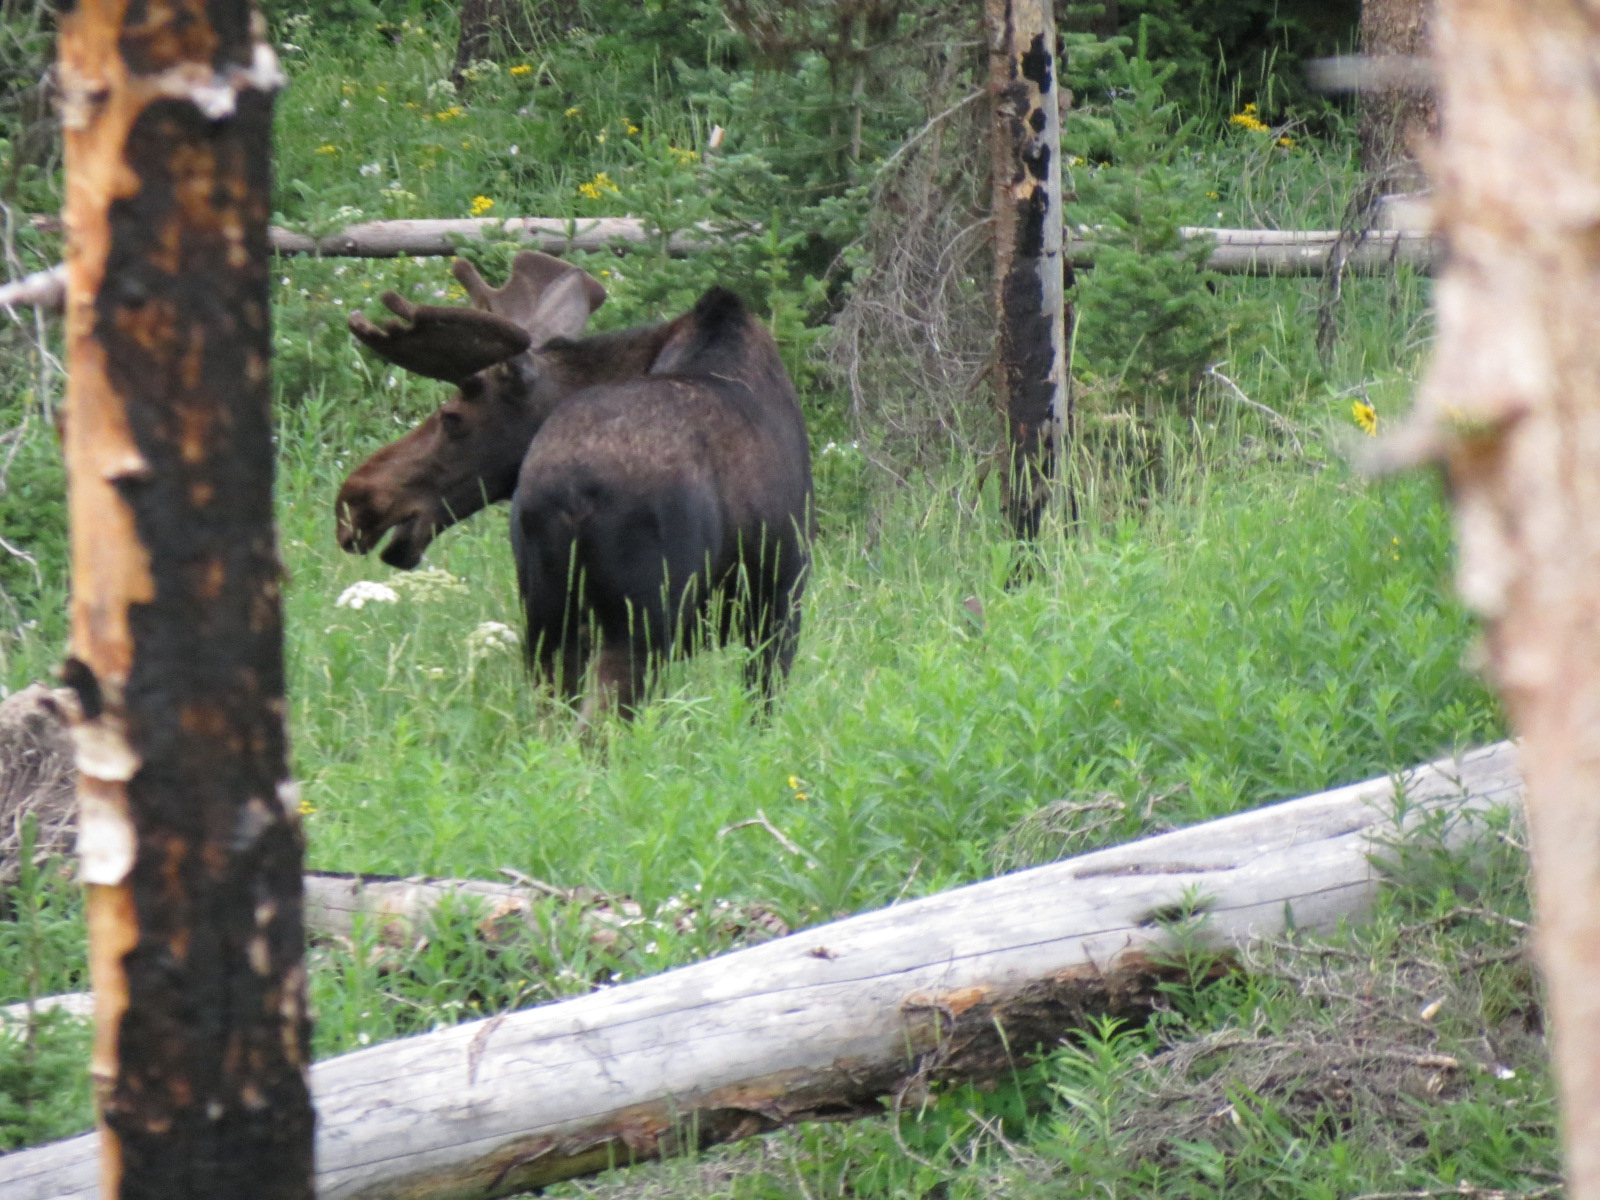 Moose on the loose in Yellowstone Park